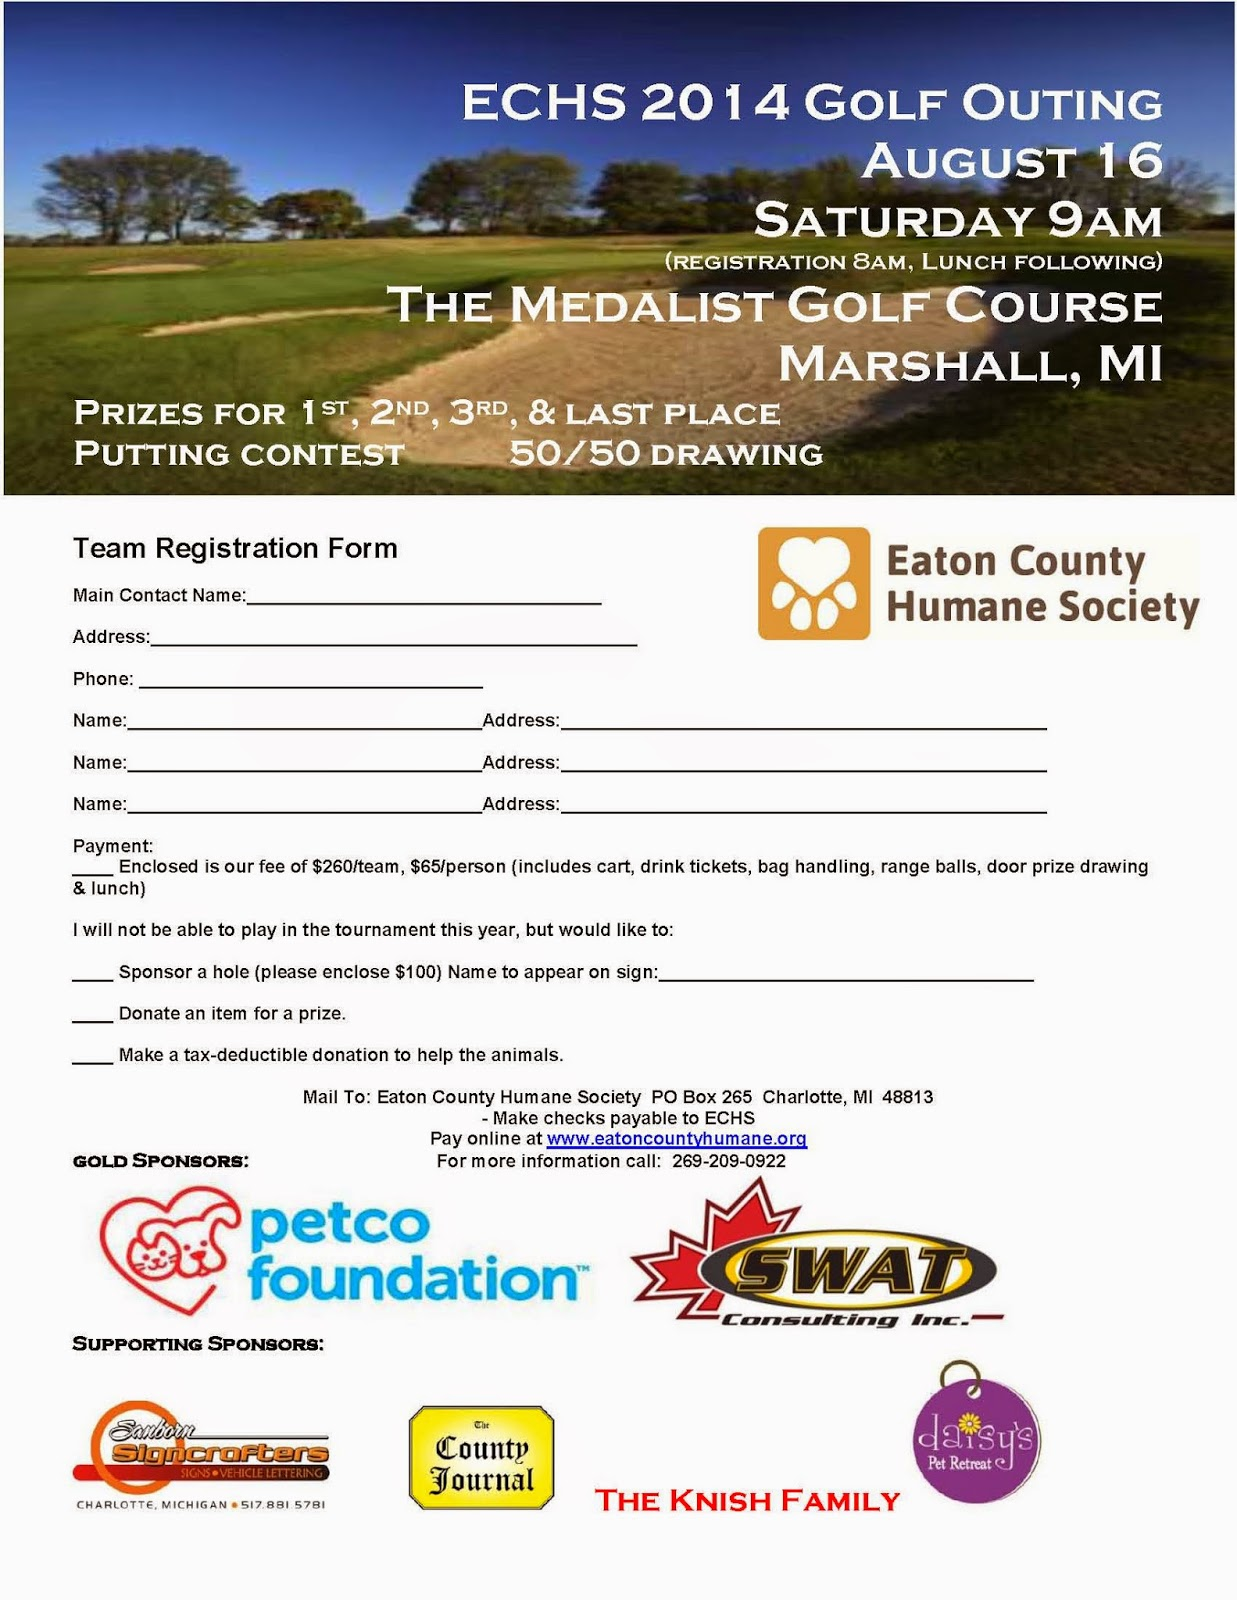 http://www.eatoncountyhumanesociety.org/p/2014-golf-outing.html